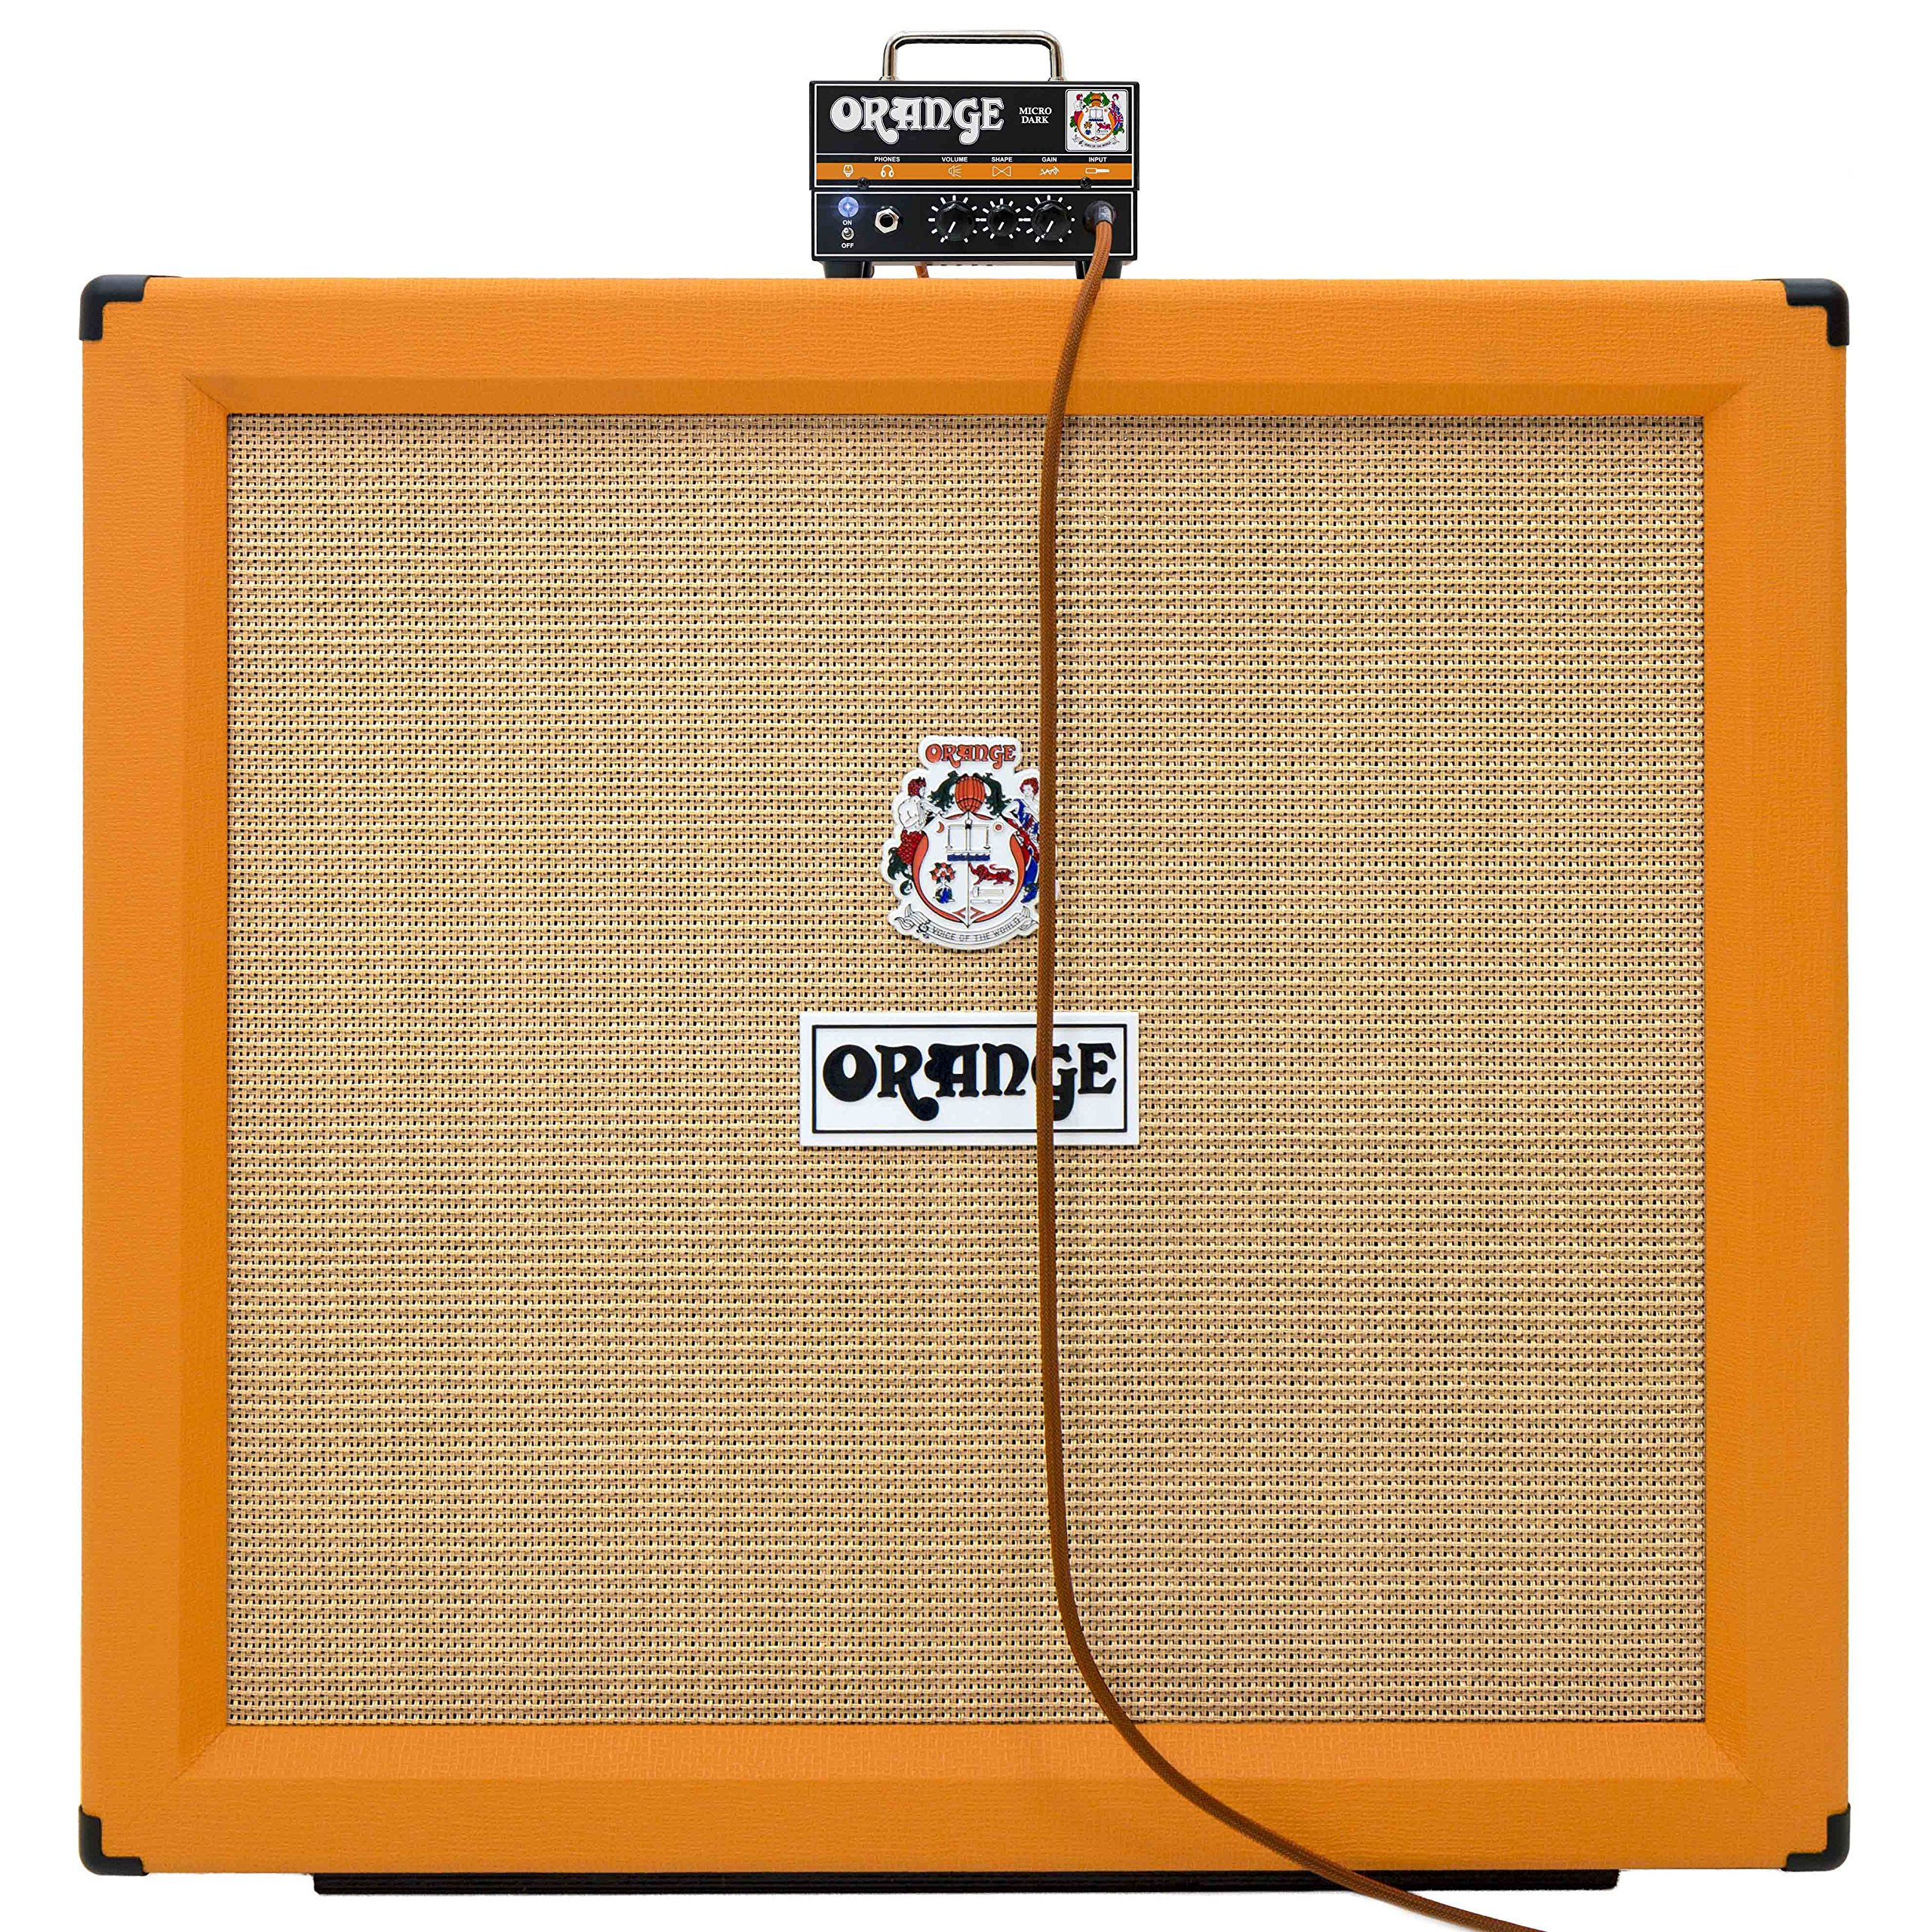 Orange MD20 Micro Dark 20-Watt Mini Guitar Amplifier Head Bundle with Instrument Cable and Austin Bazaar Polishing Cloth by Orange (Image #1)